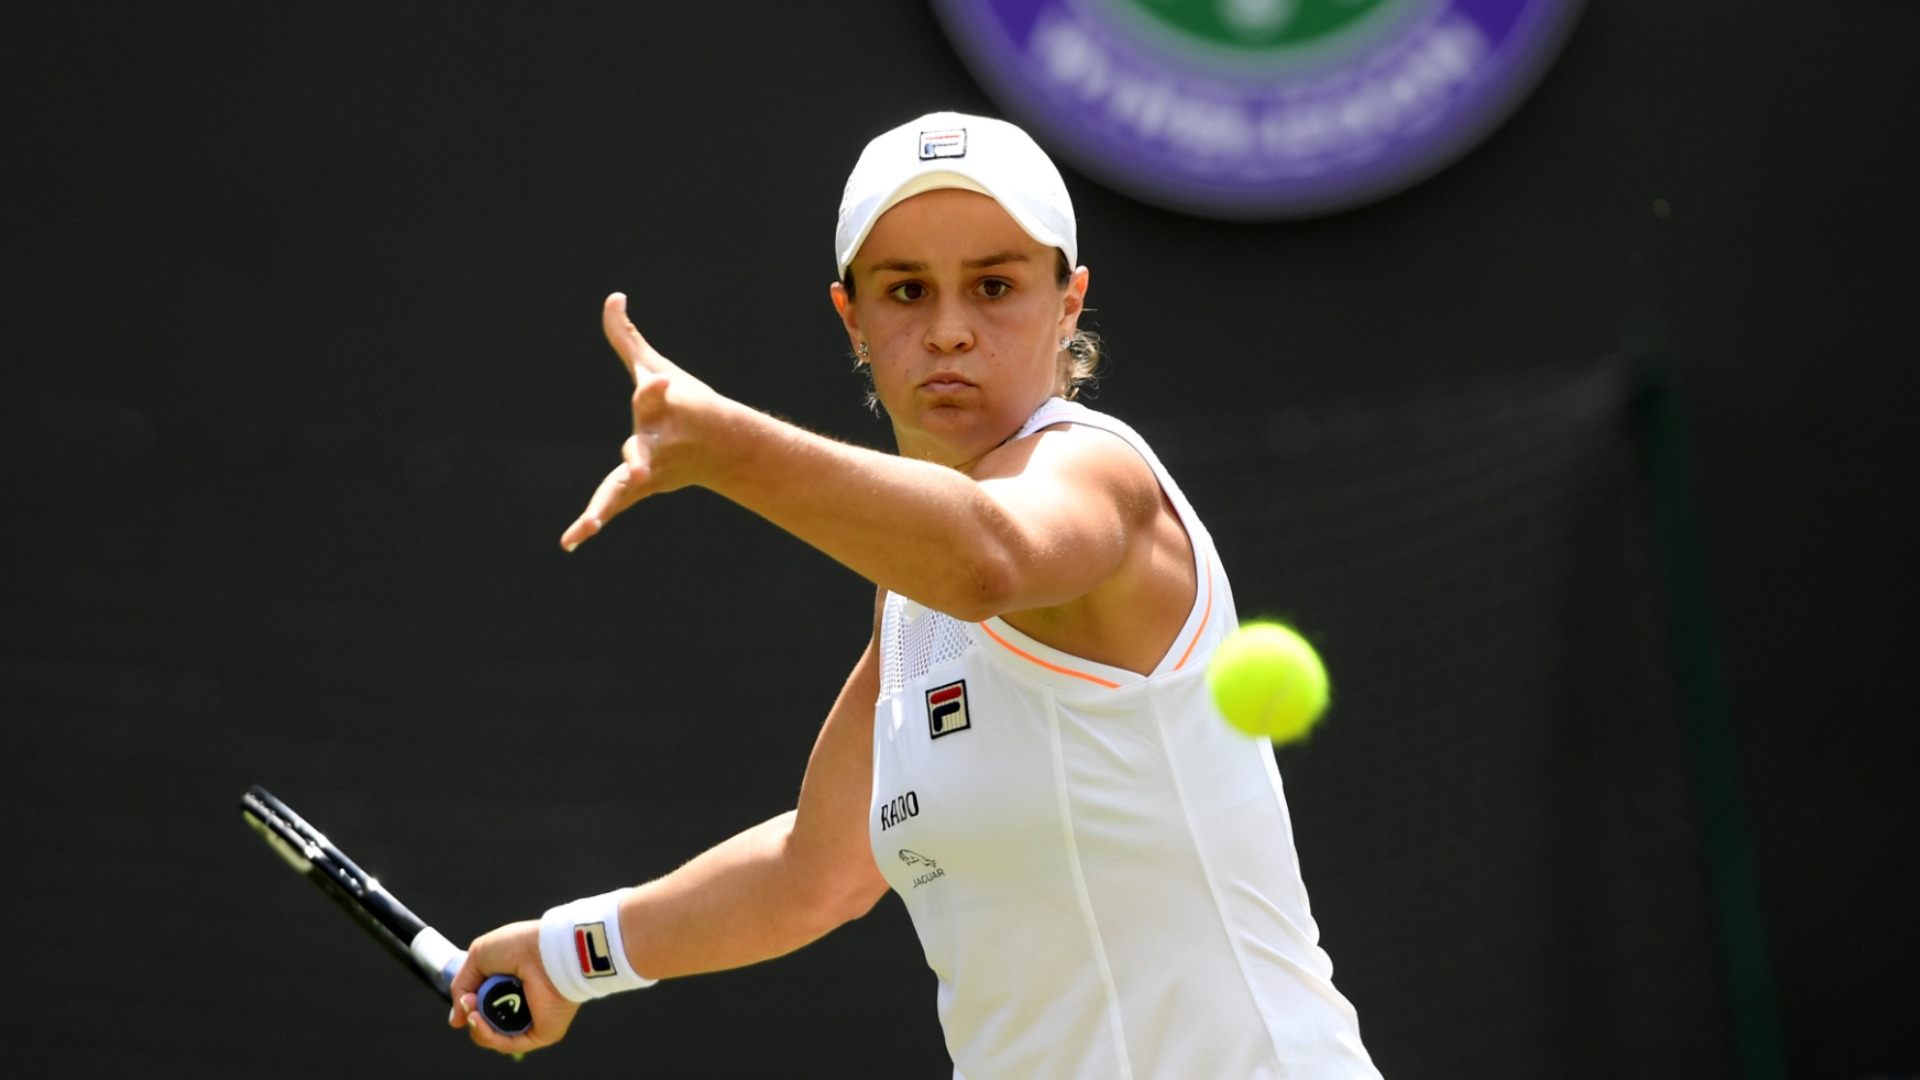 World Number One Barty Knocked Out Of Wimbledon